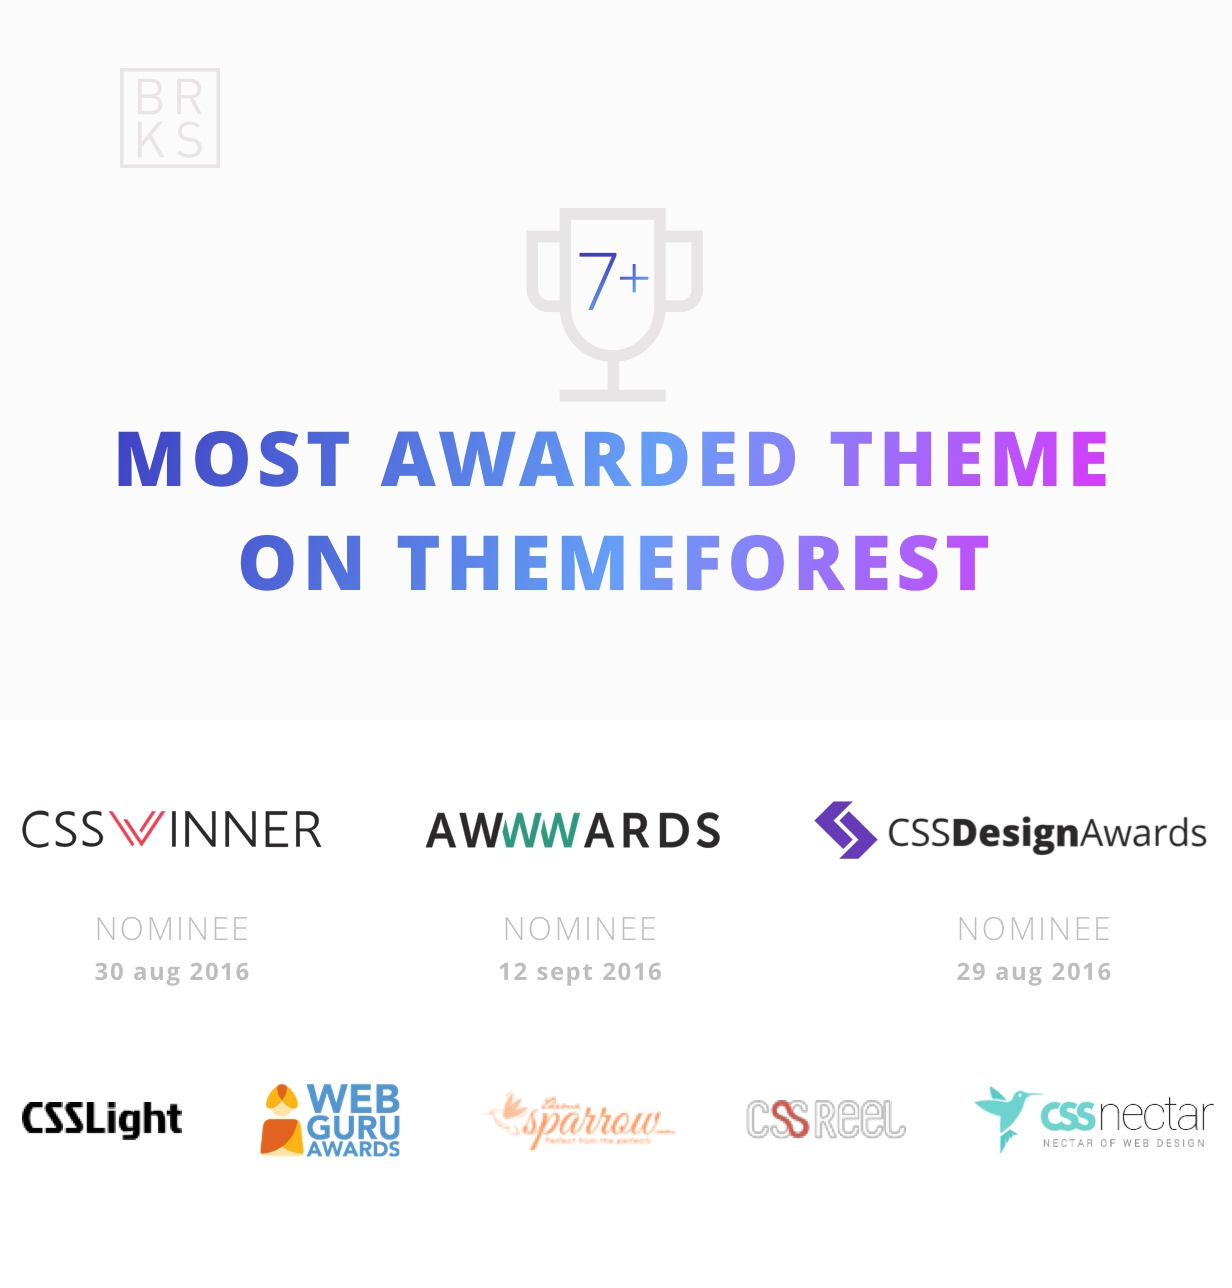 Brooks WP – Creative Multi-Purpose WordPress Theme. Awards:  CSSDesignAwards, CSSWinner, Awwwards, CSSReel, CSSNectar, ThemeSparrow, CSSLight